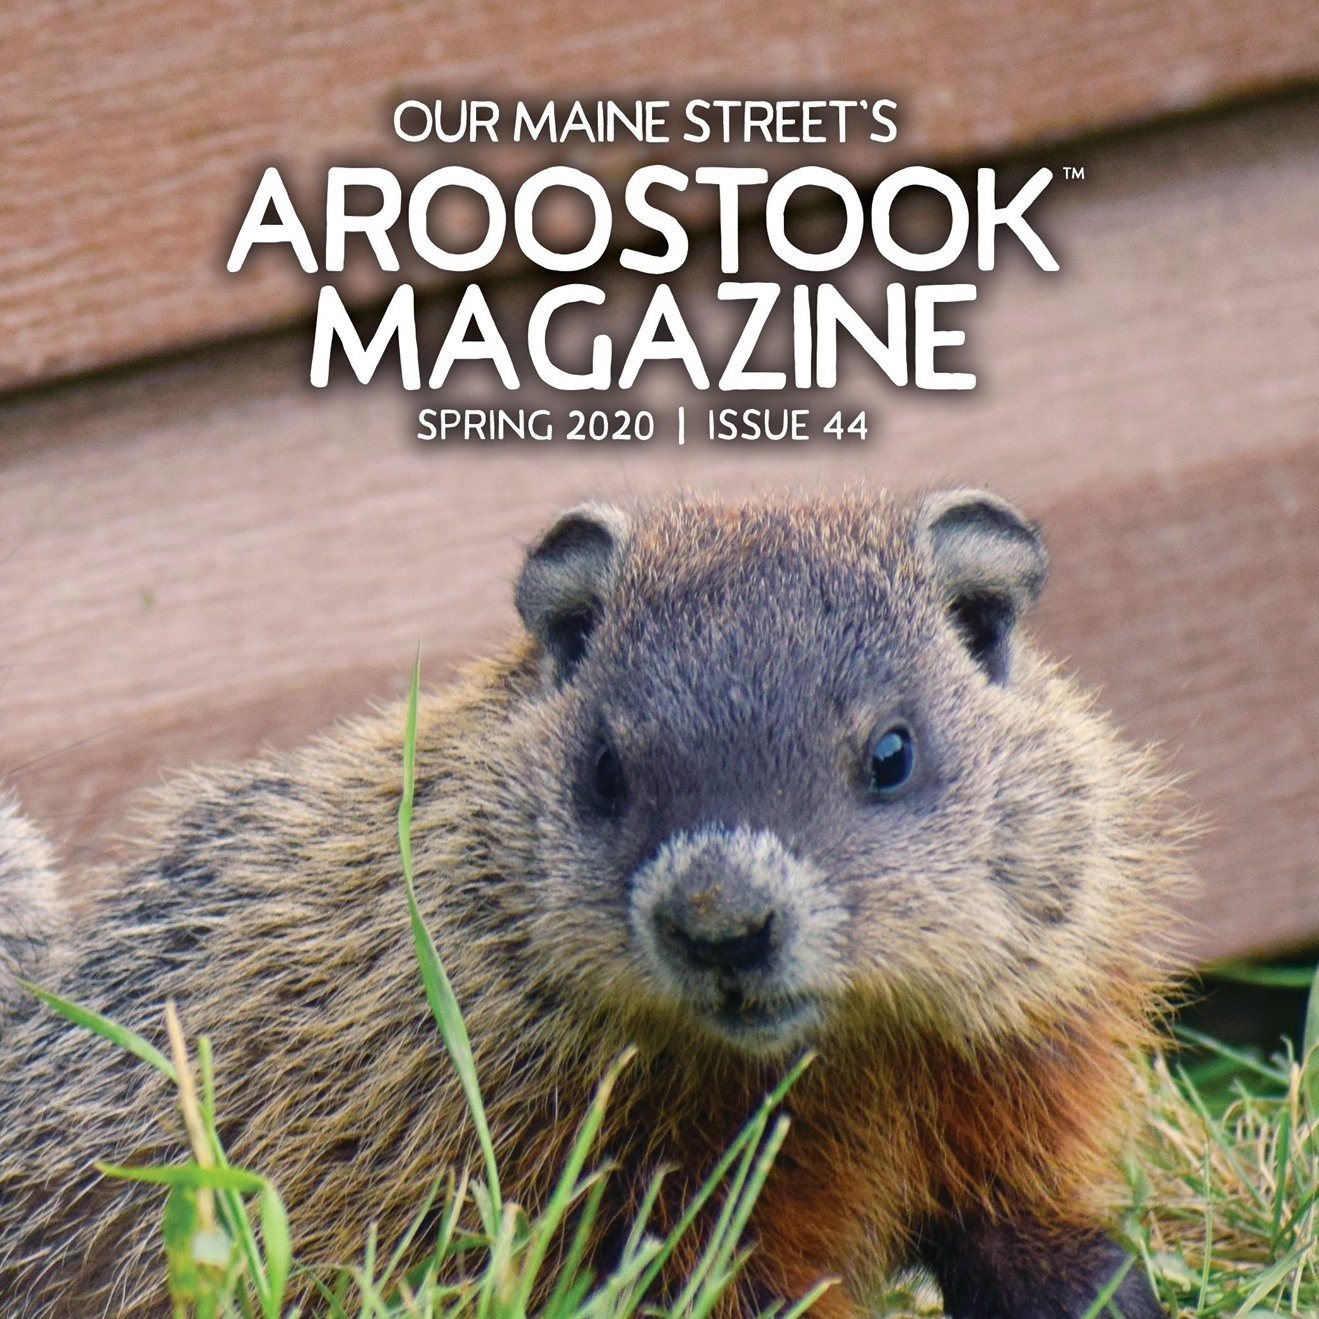 Our Maine Street cover image with groundhog